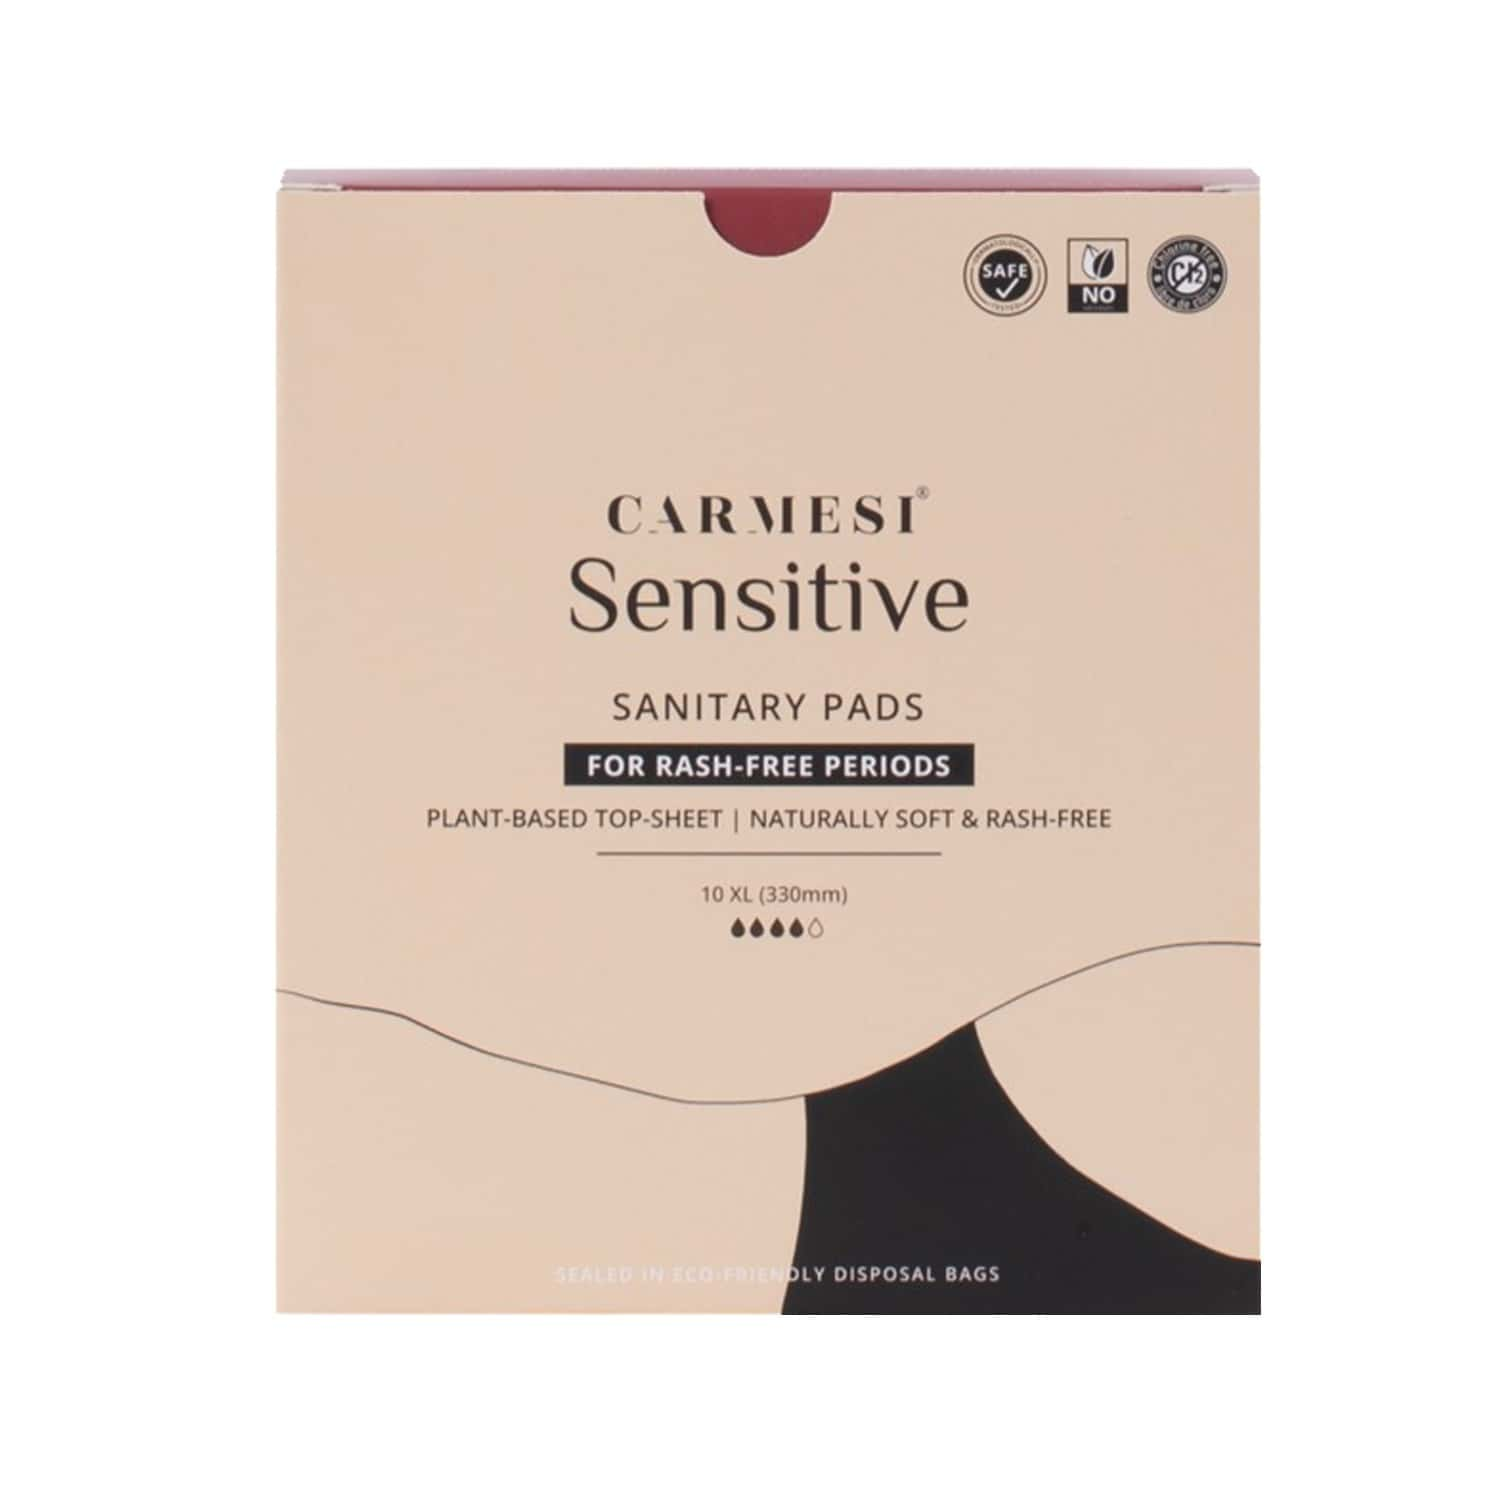 Carmesi Sensitive - Sanitary Pads For Rash-free Periods (10 Xl)